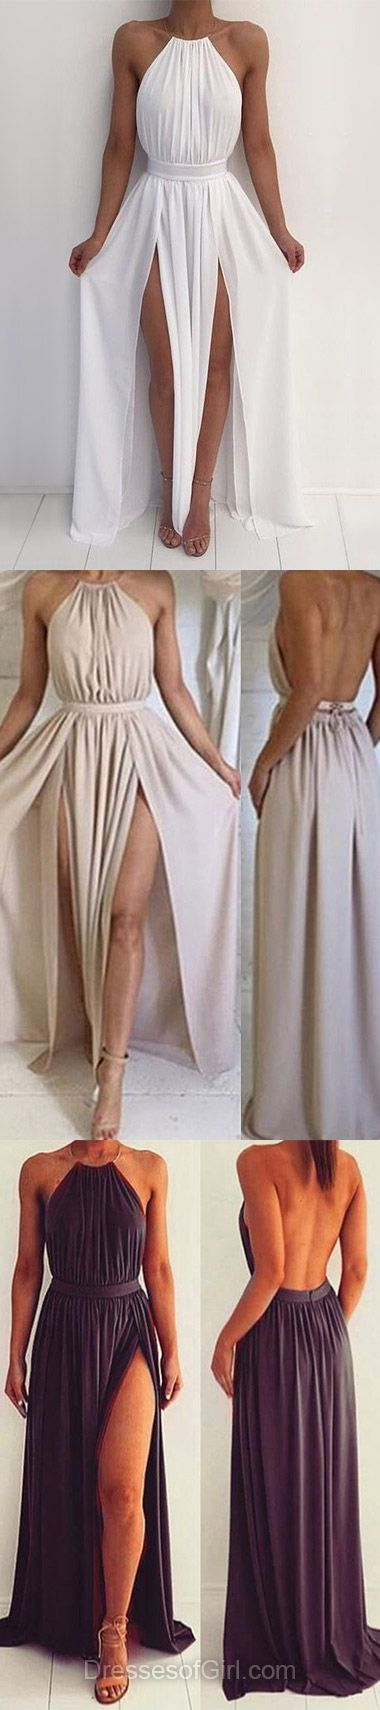 Chiffon Prom Dress, Open Back Prom Dresses, Sexy Evening Dresses, White Party Dresses, Halter Formal Dresses